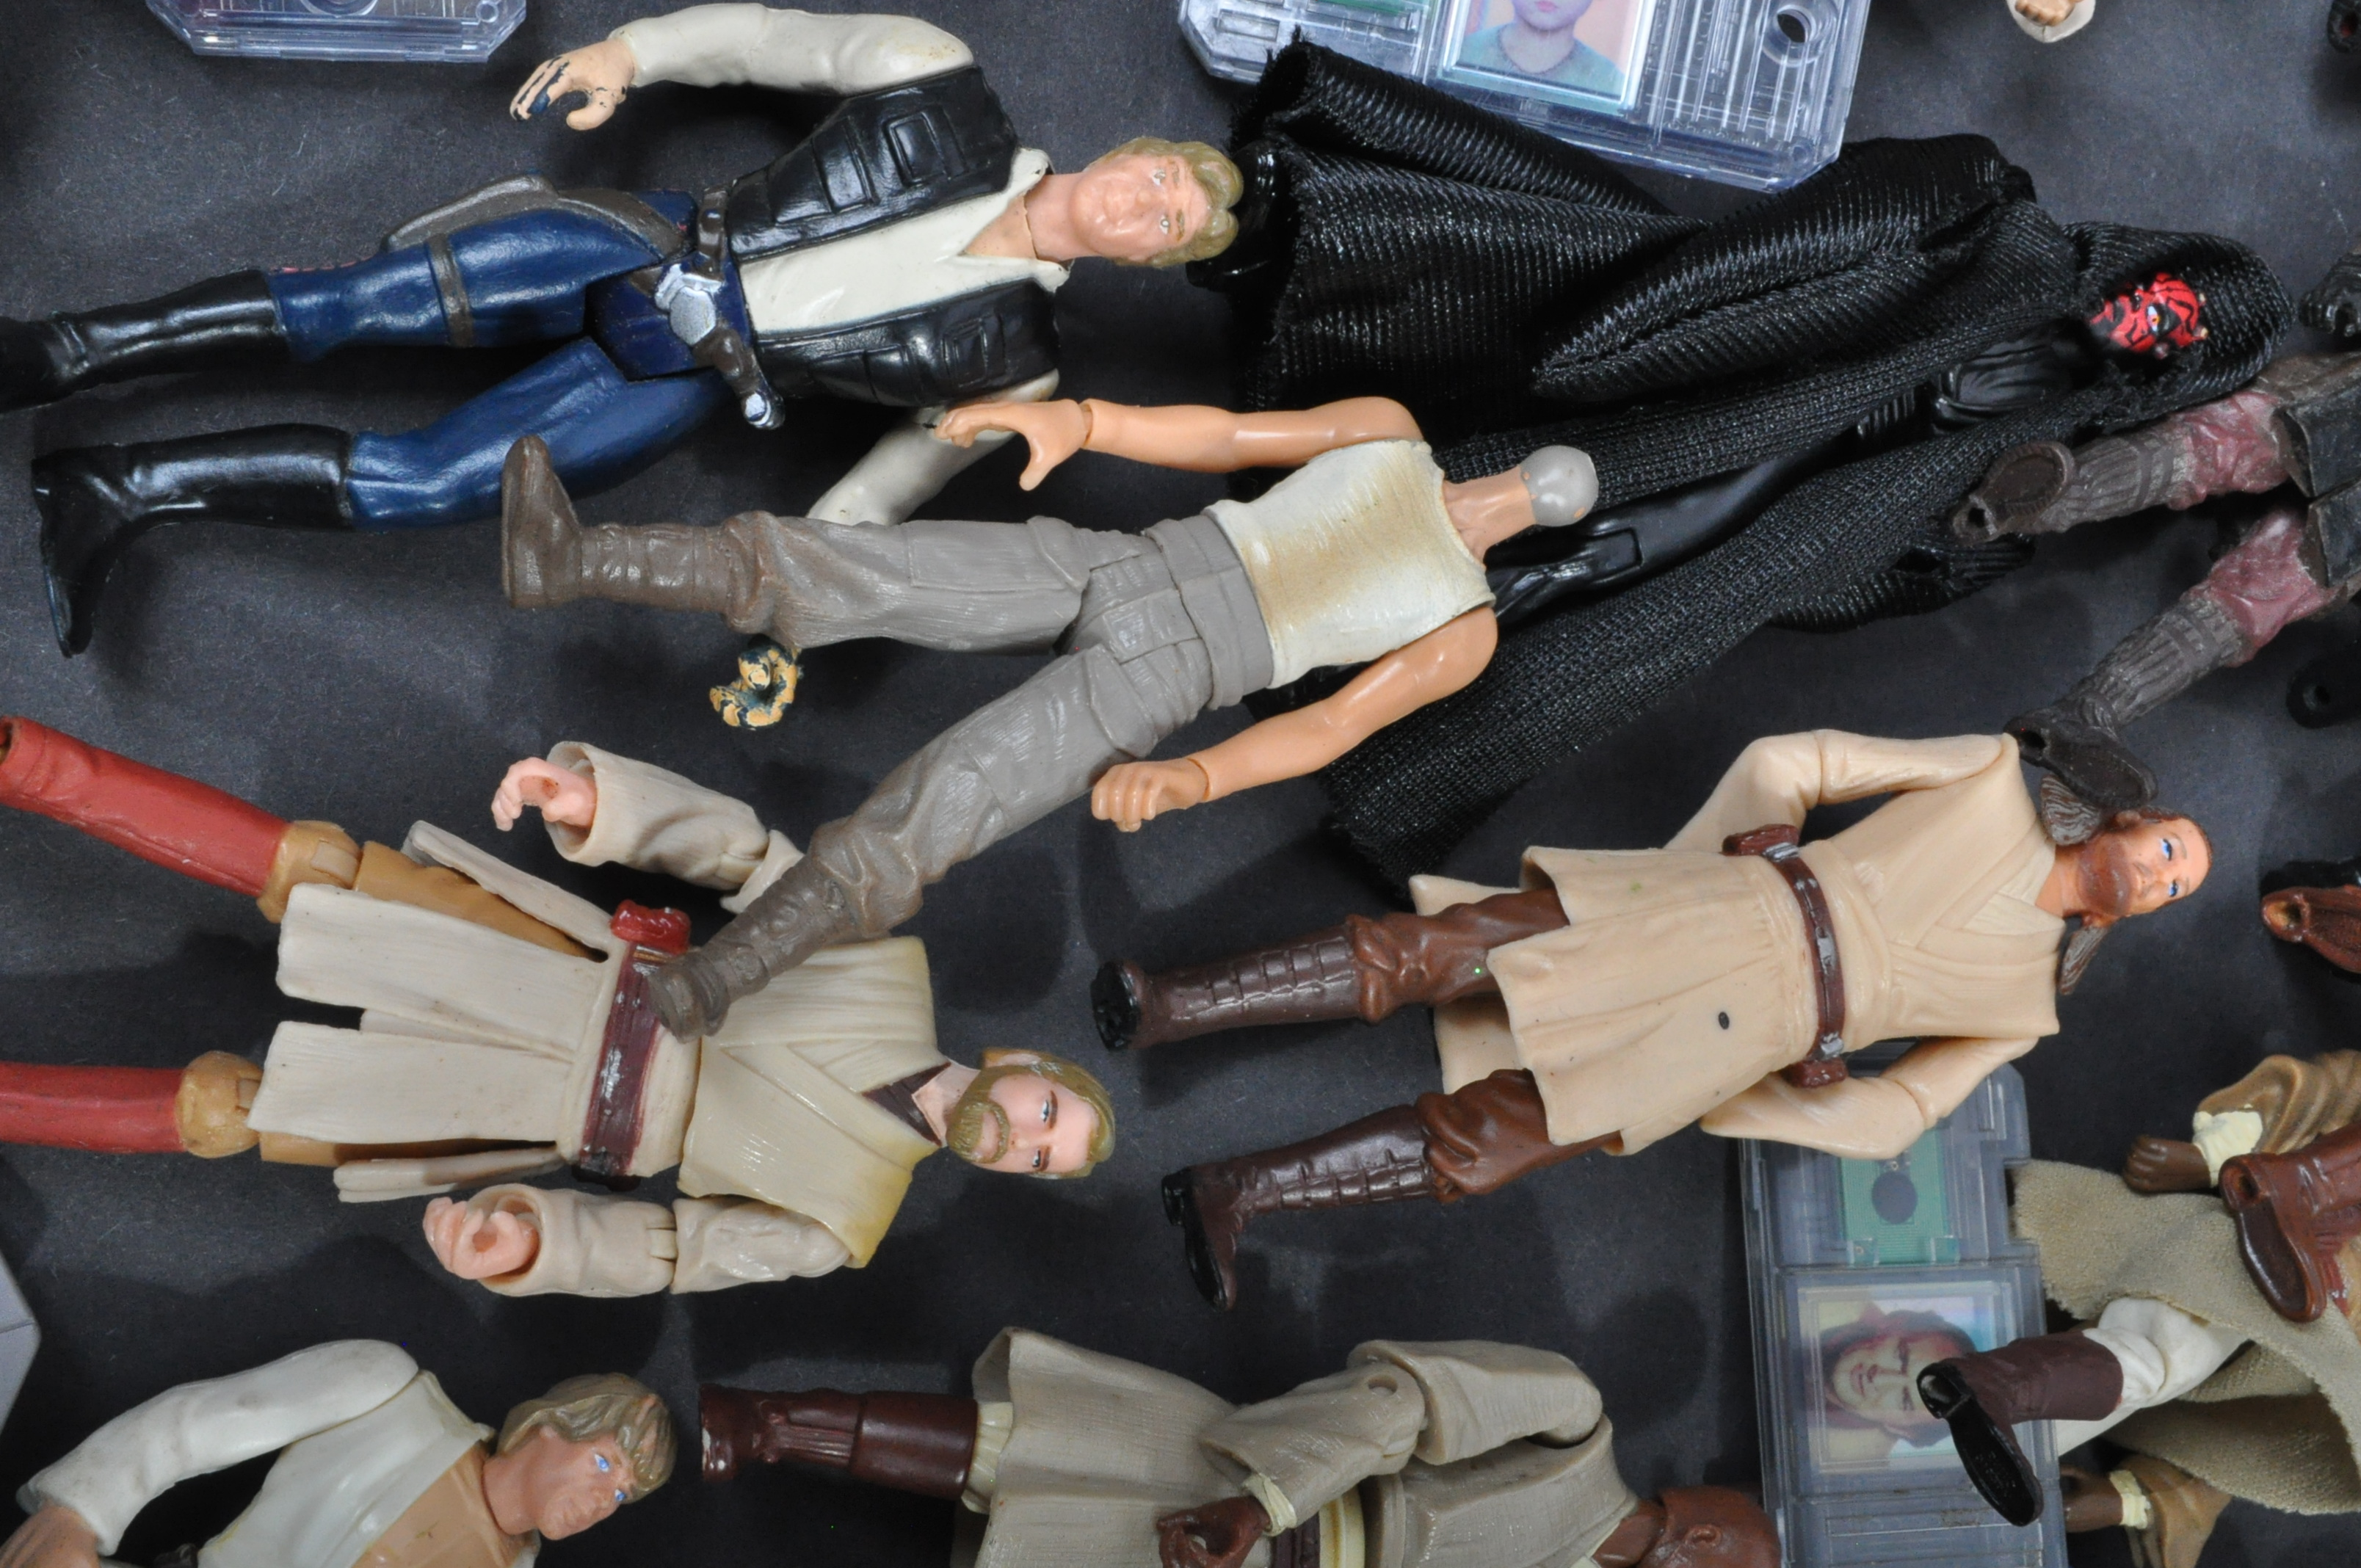 STAR WARS - LARGE COLLECTION KENNER / HASBRO CLONE WARS & OTHER FIGURES - Image 8 of 10